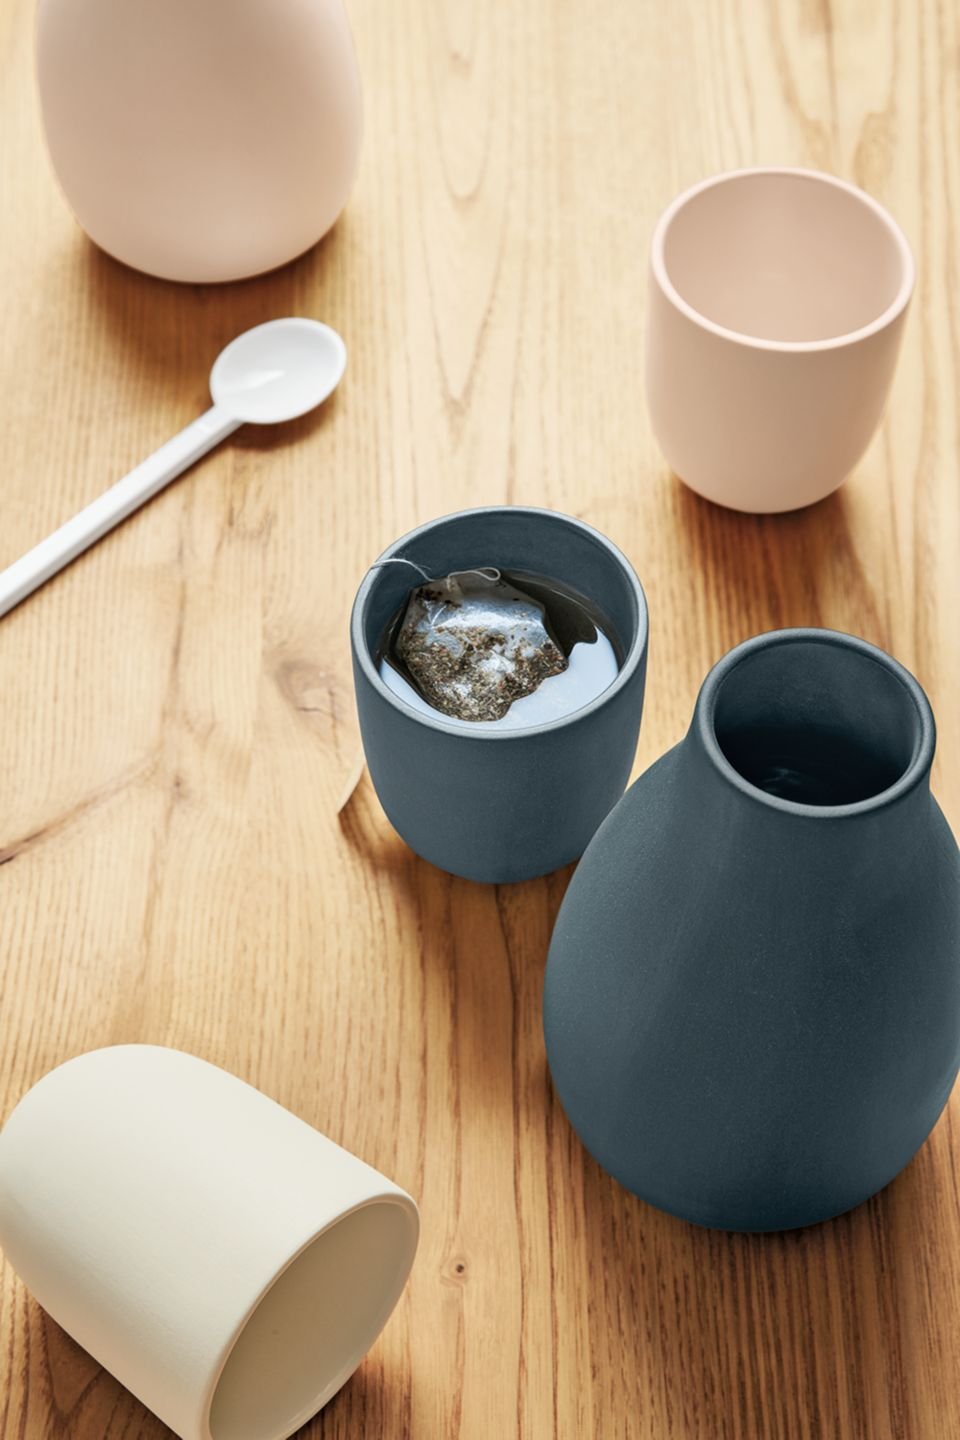 Detail view of ceramic Cadence carafe and tumblers